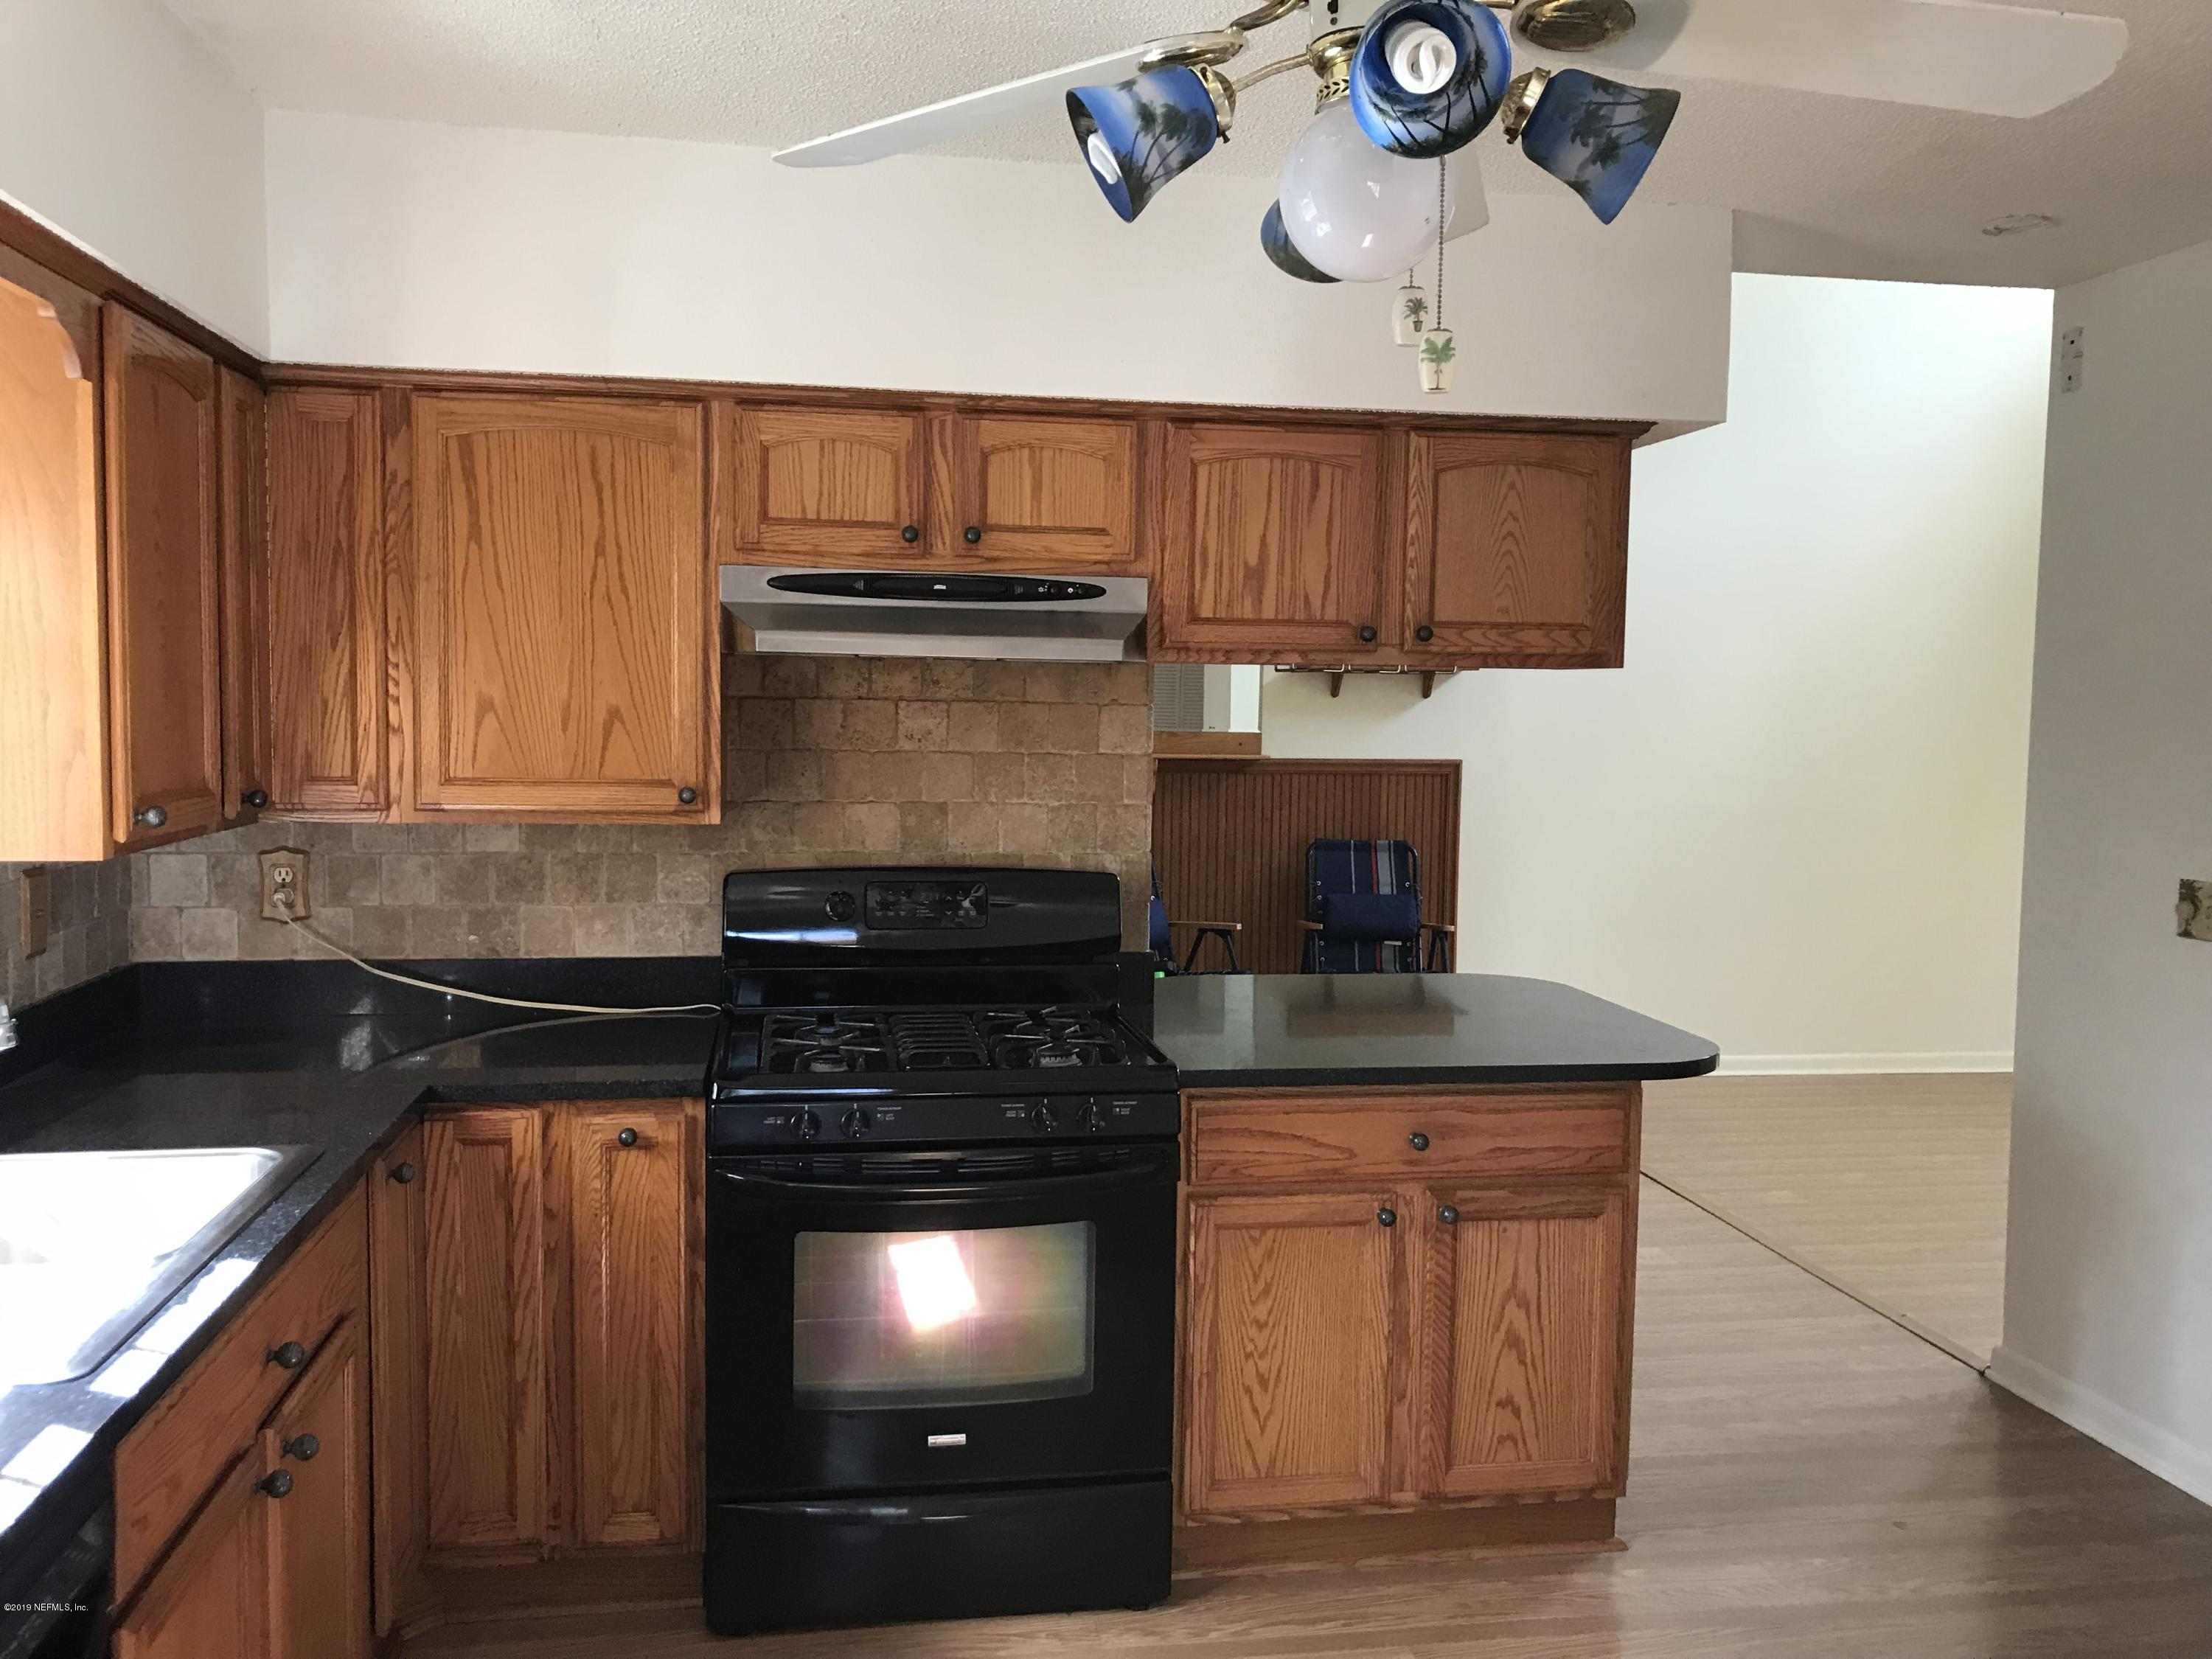 7030 HOLIDAY HILL, JACKSONVILLE, FLORIDA 32216, 3 Bedrooms Bedrooms, ,2 BathroomsBathrooms,Residential - single family,For sale,HOLIDAY HILL,978954